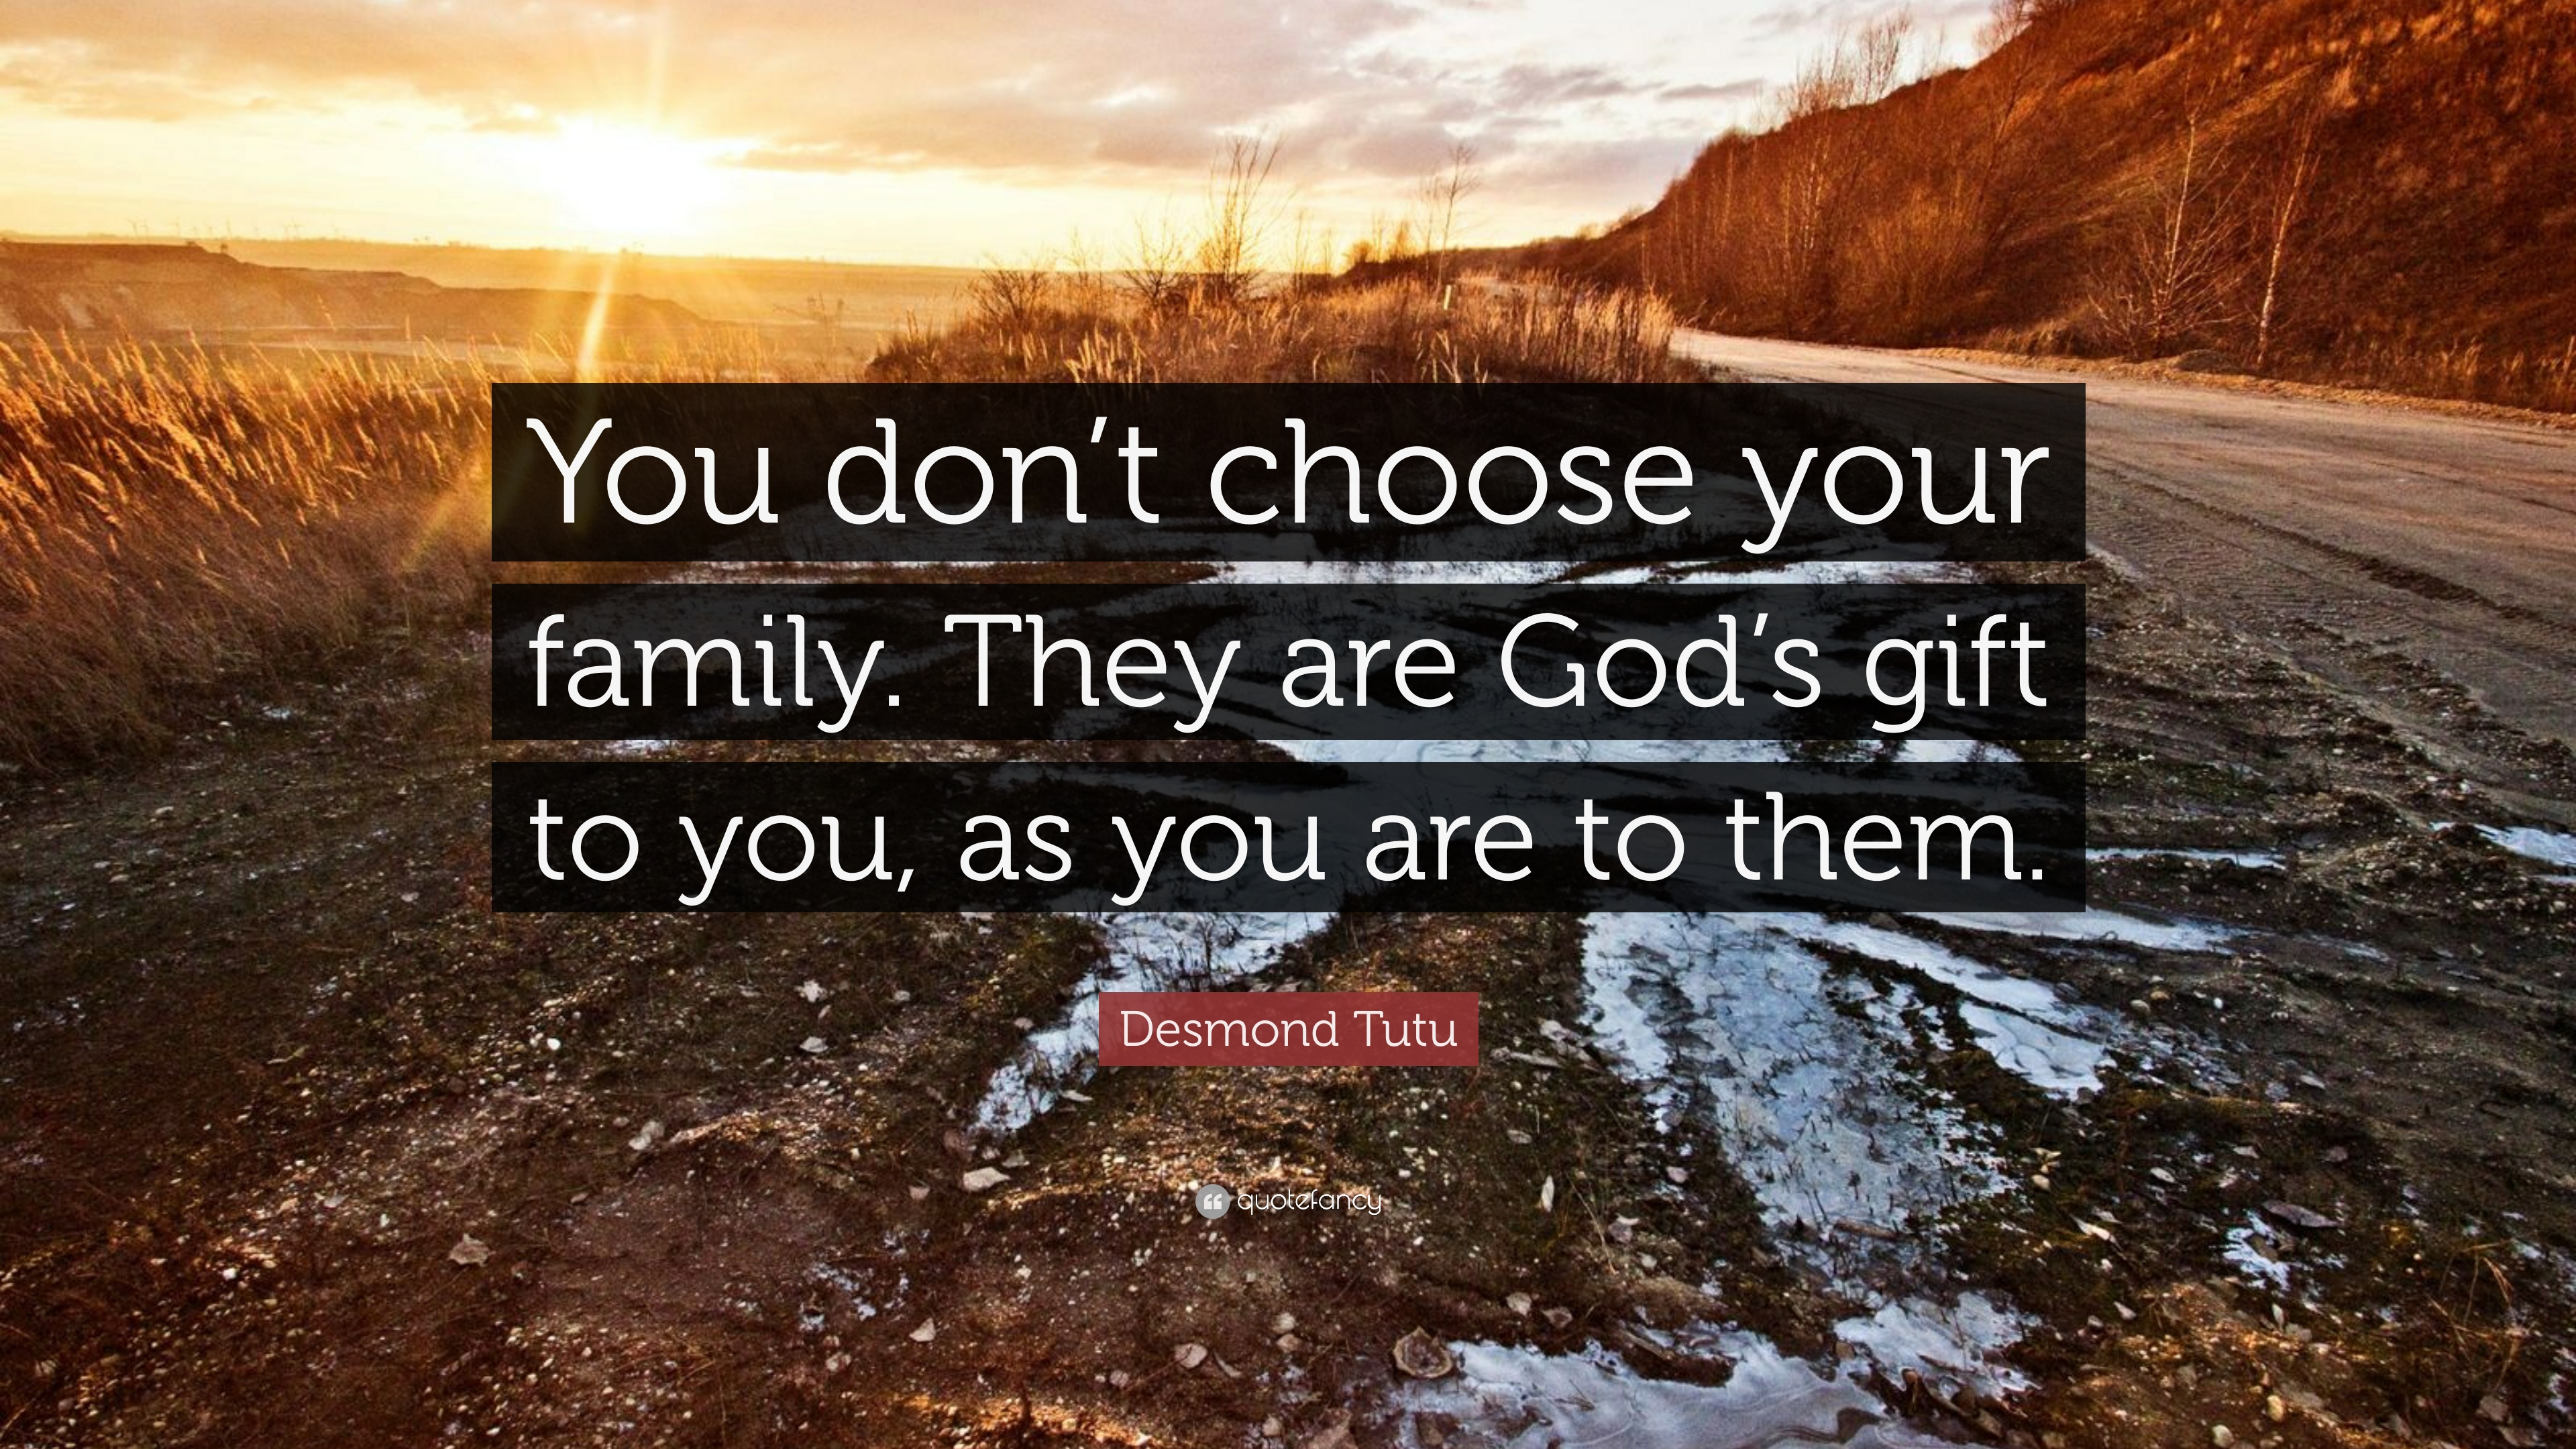 Desmond Tutu Quote You Dont Choose Your Family They Are Gods